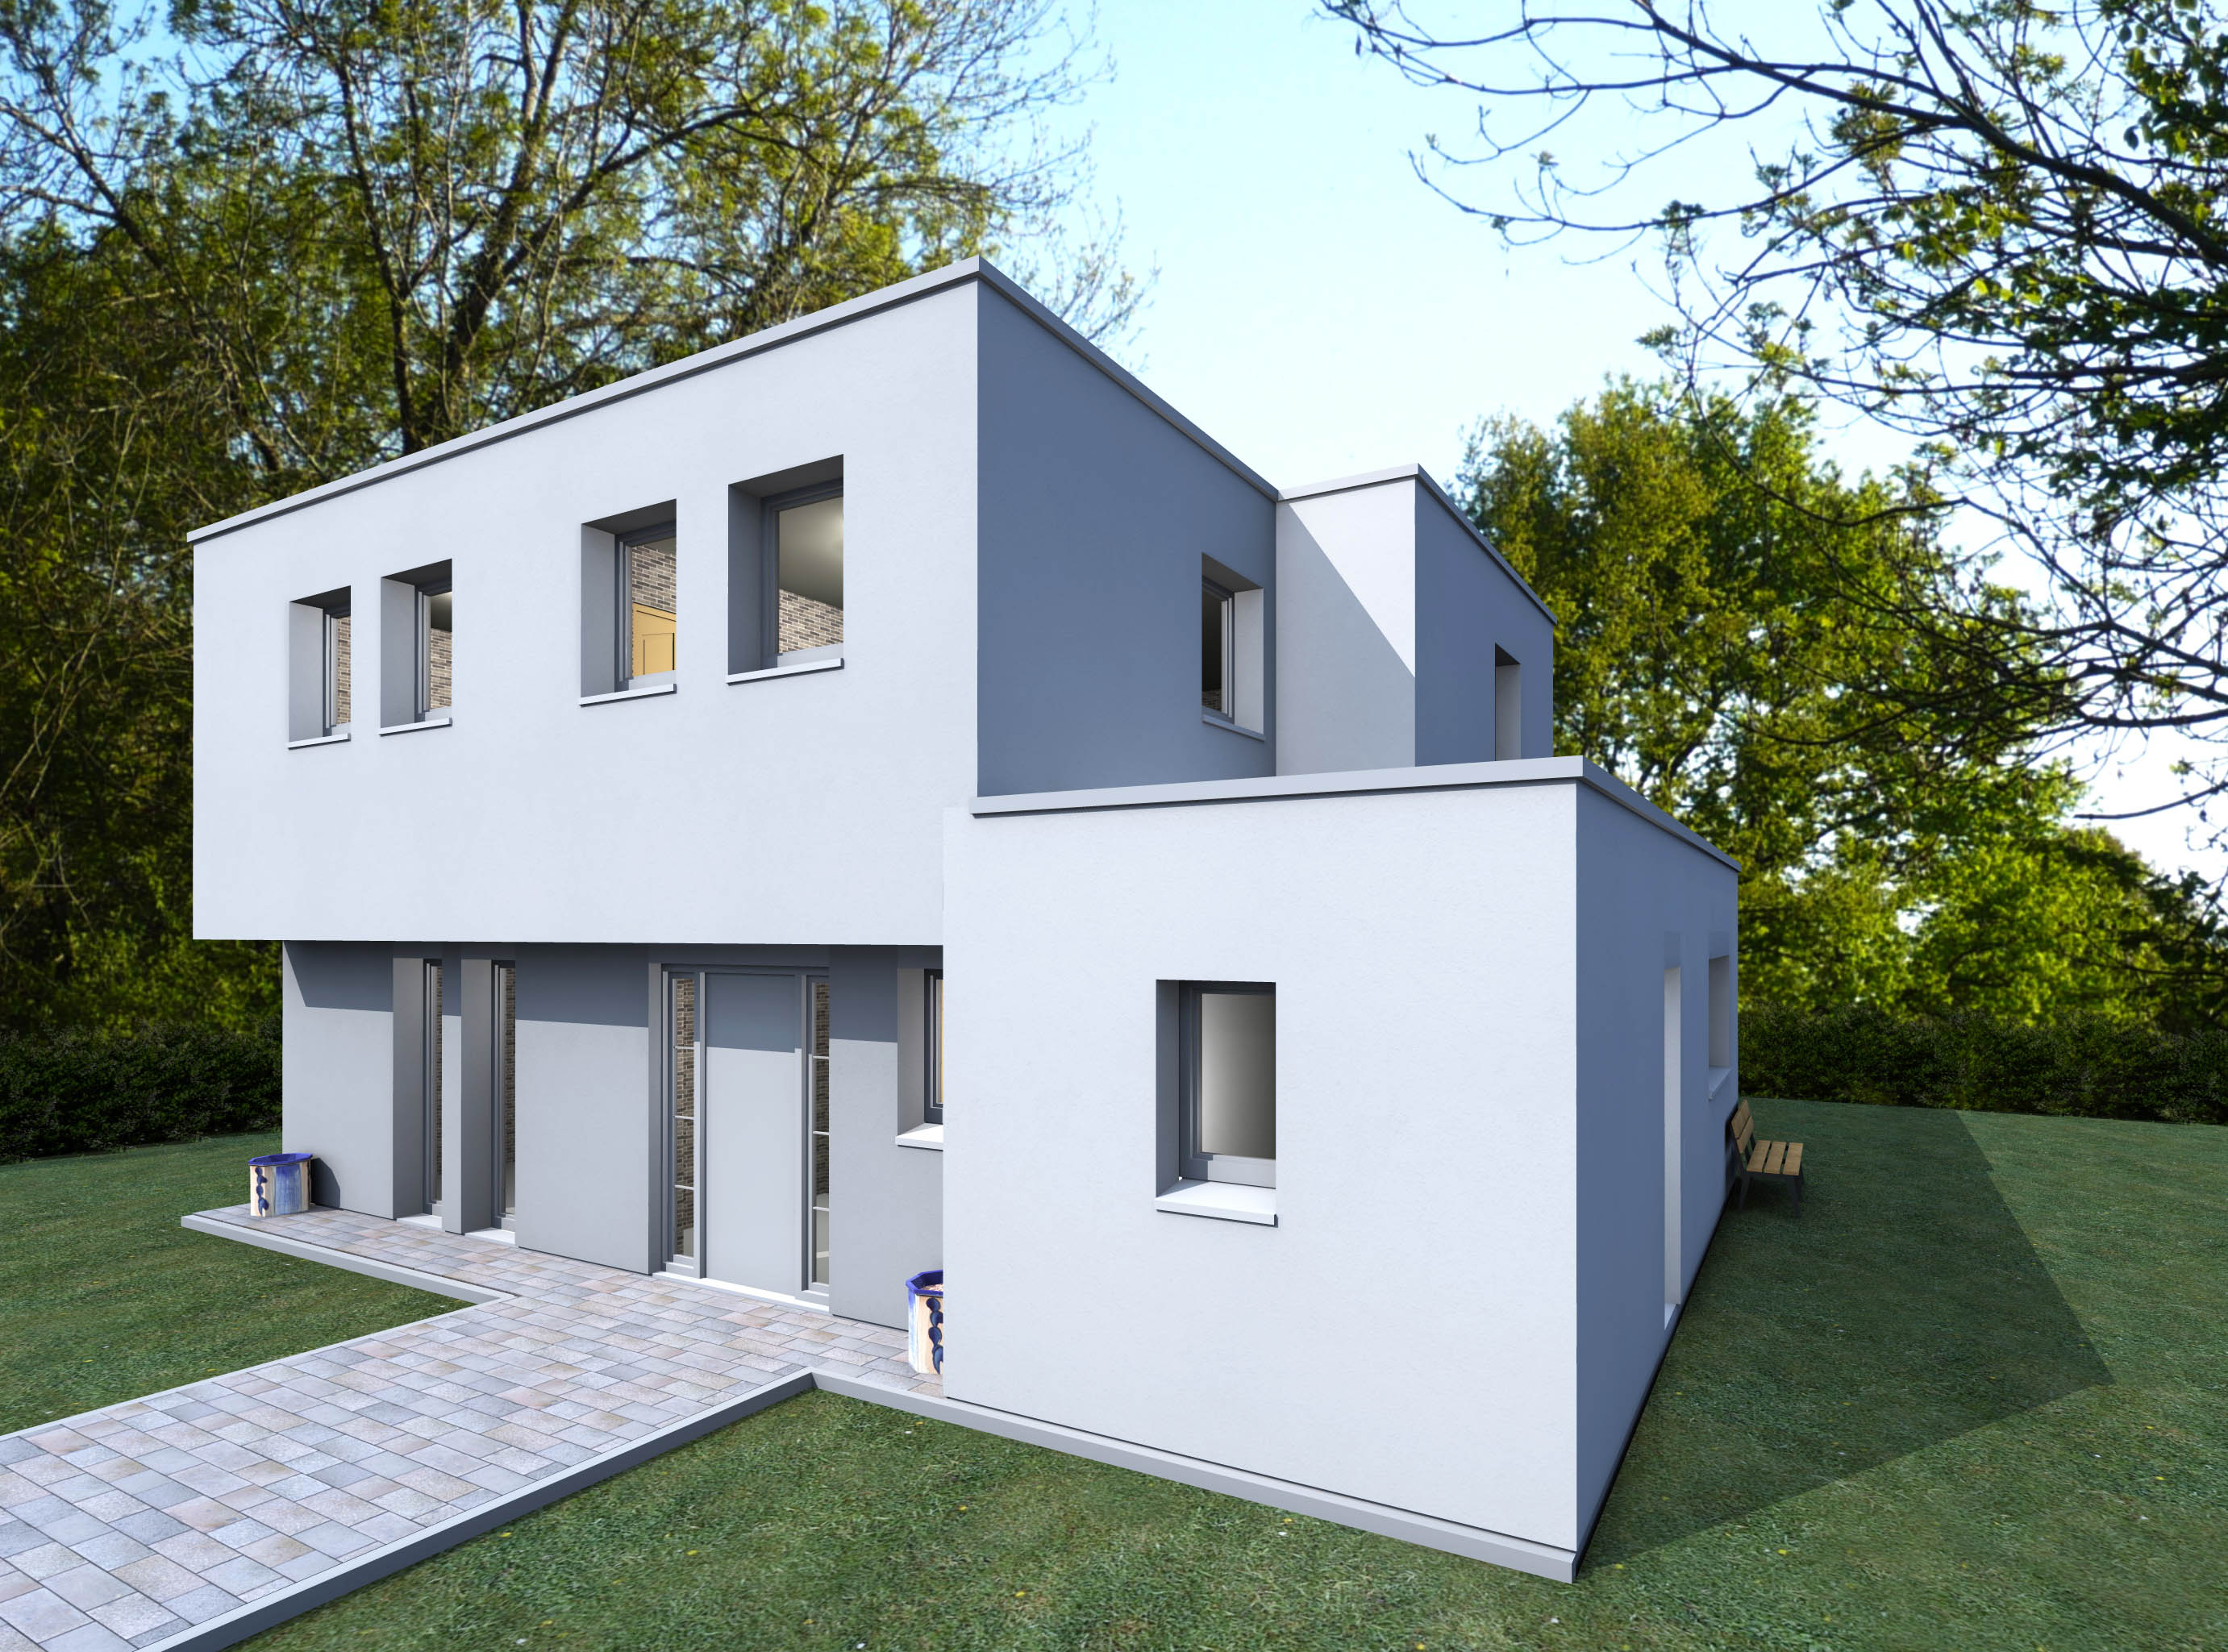 Maison En Cube Affordable Get Free High Quality Hd Wallpapers